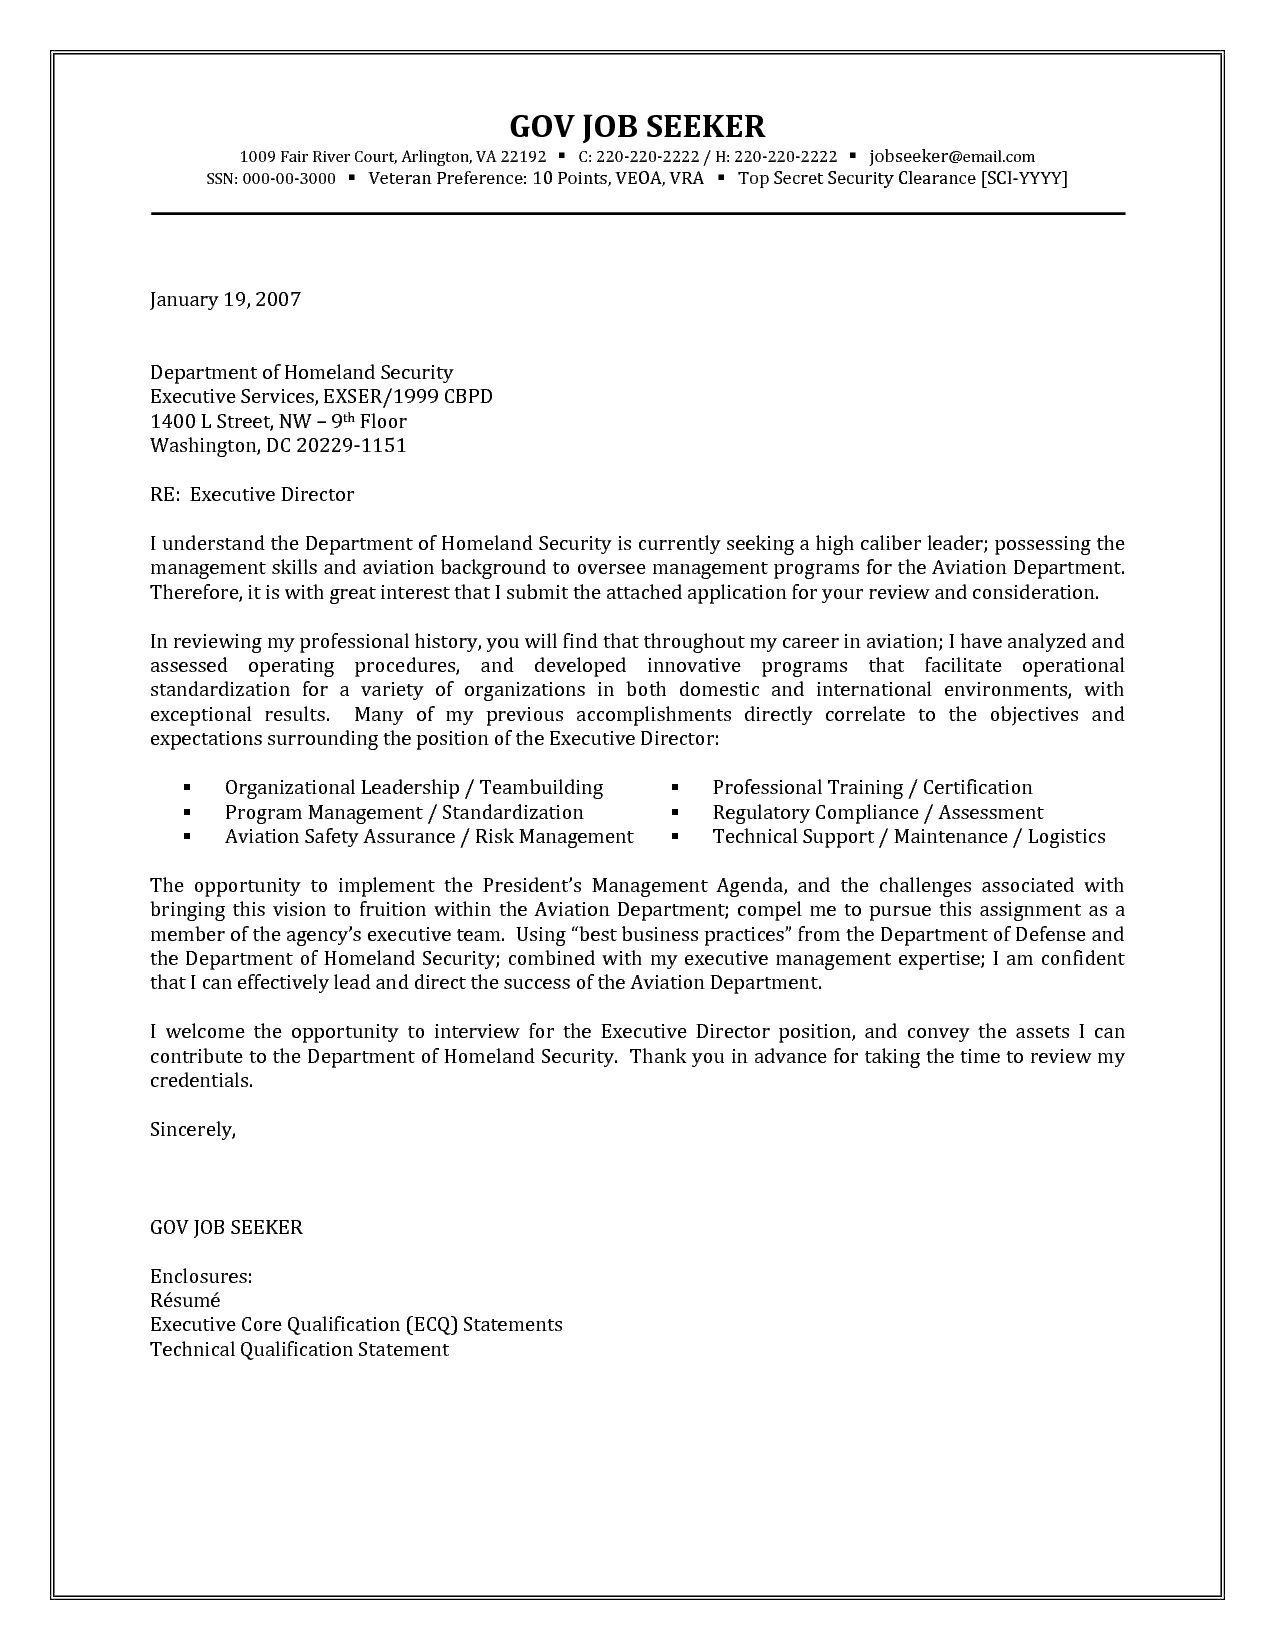 Government Resume Template Government Resume Cover Letter Examples  Httpjobresumesample